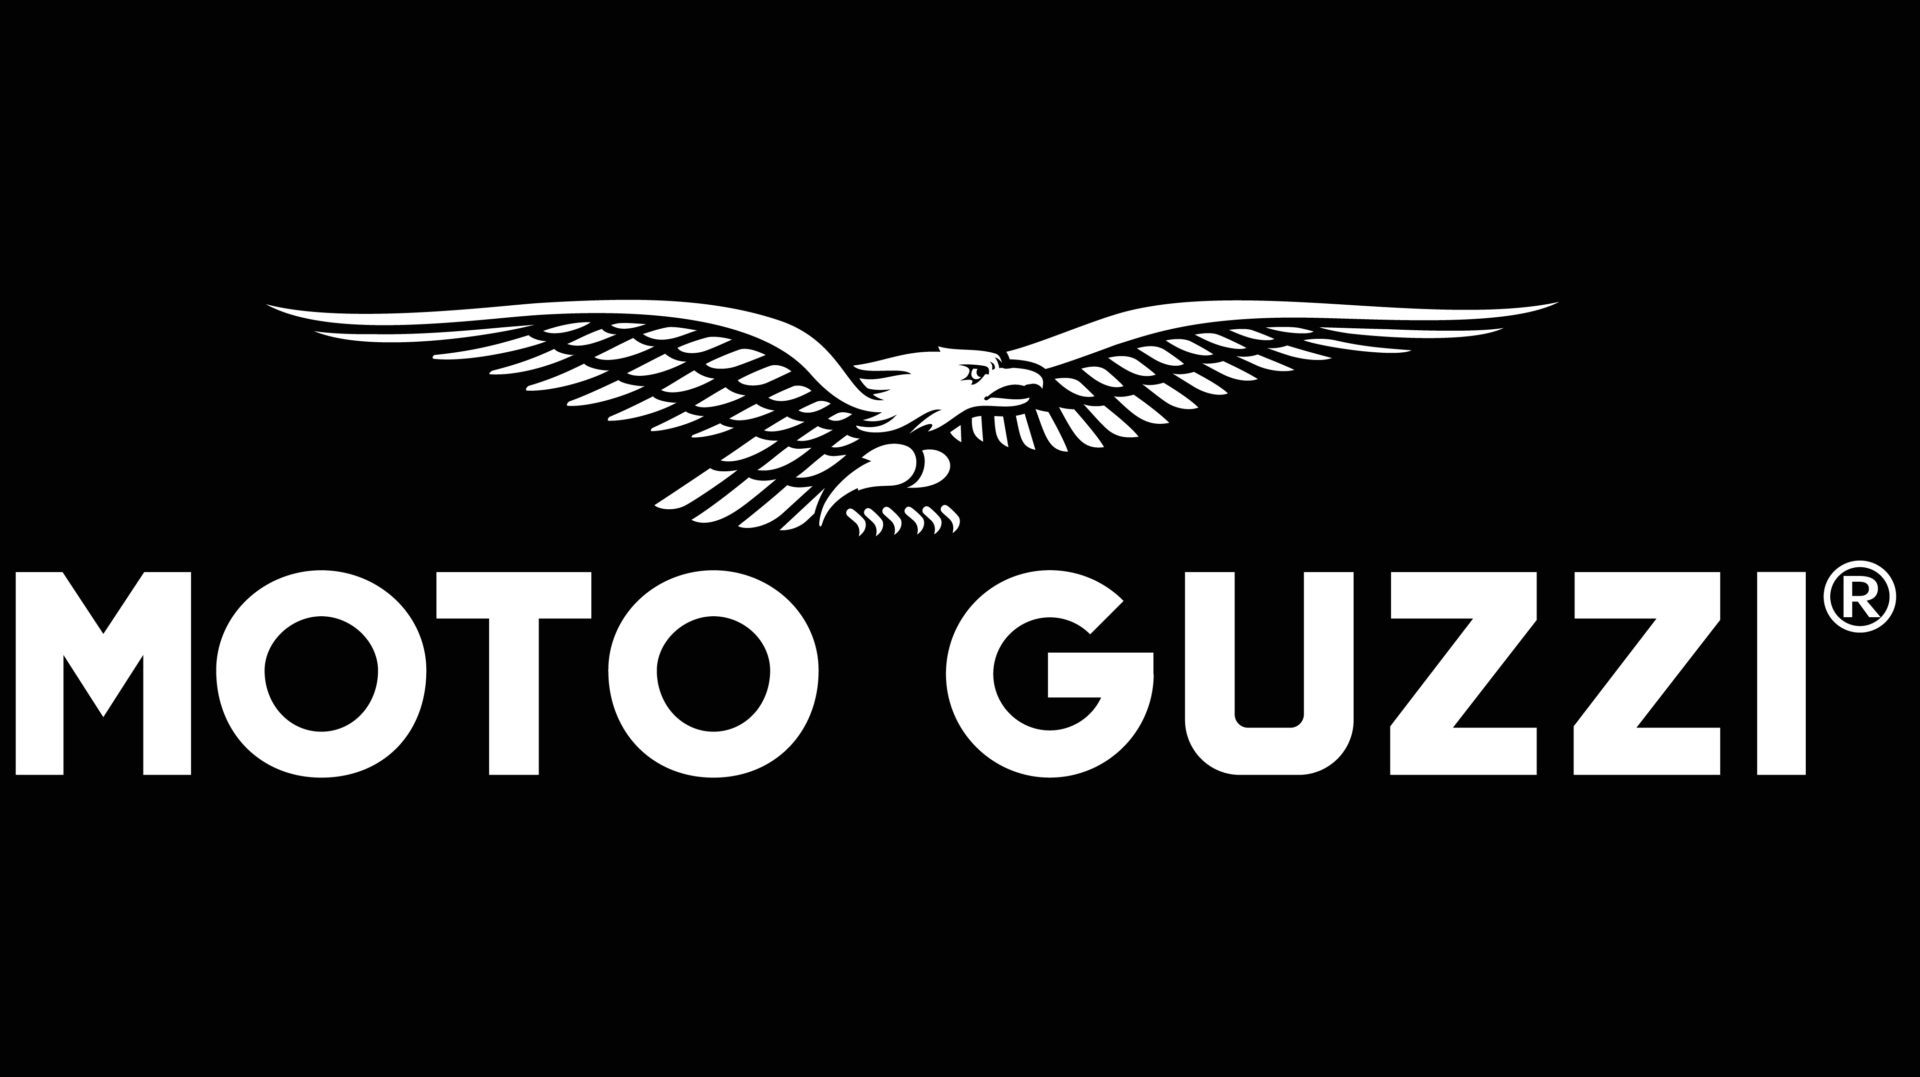 moto guzzi motorcycle logo history and meaning bike emblem. Black Bedroom Furniture Sets. Home Design Ideas